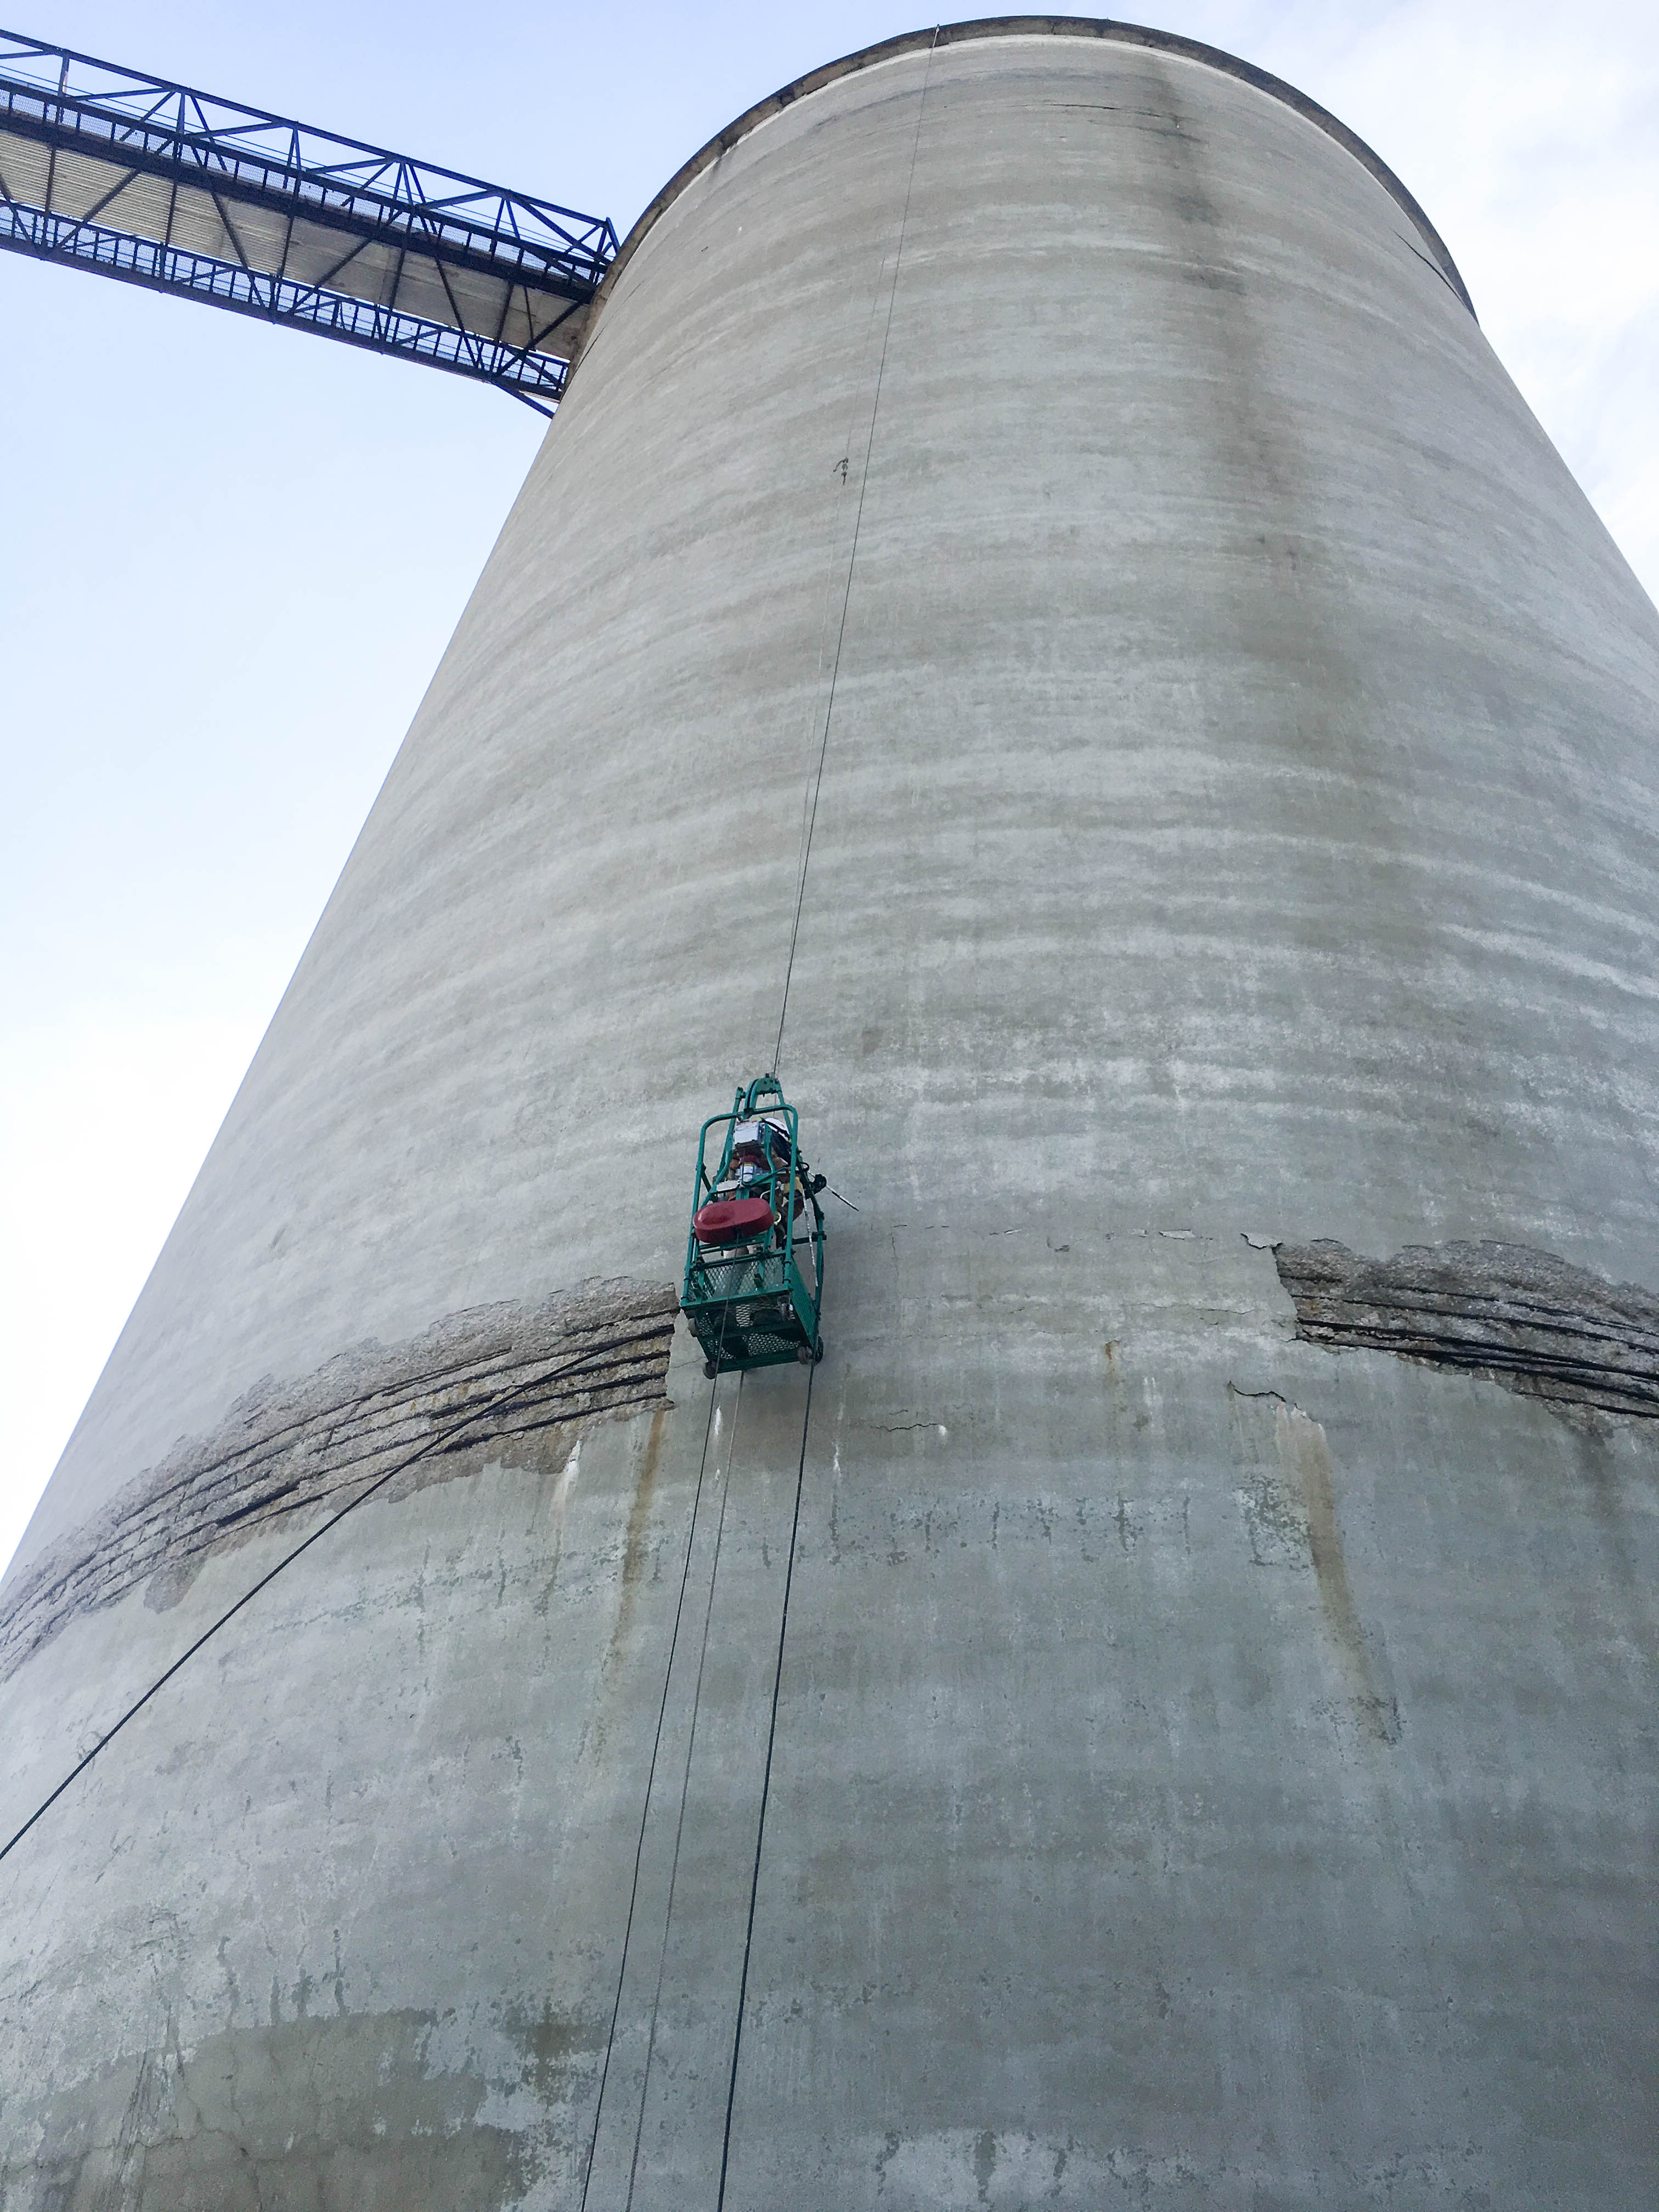 Man on side of silo performing silo inspection